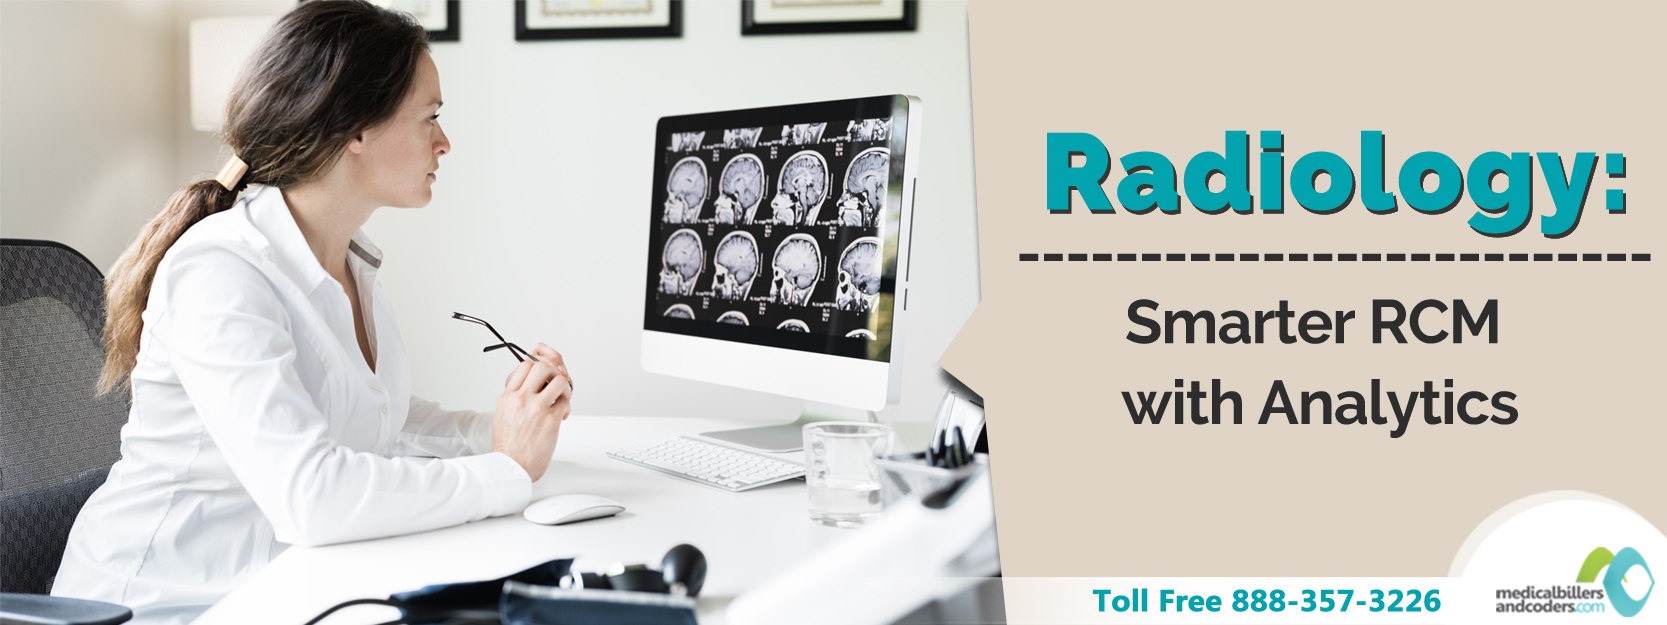 Radiology-Smarter-RCM-with-Analytics.jpg